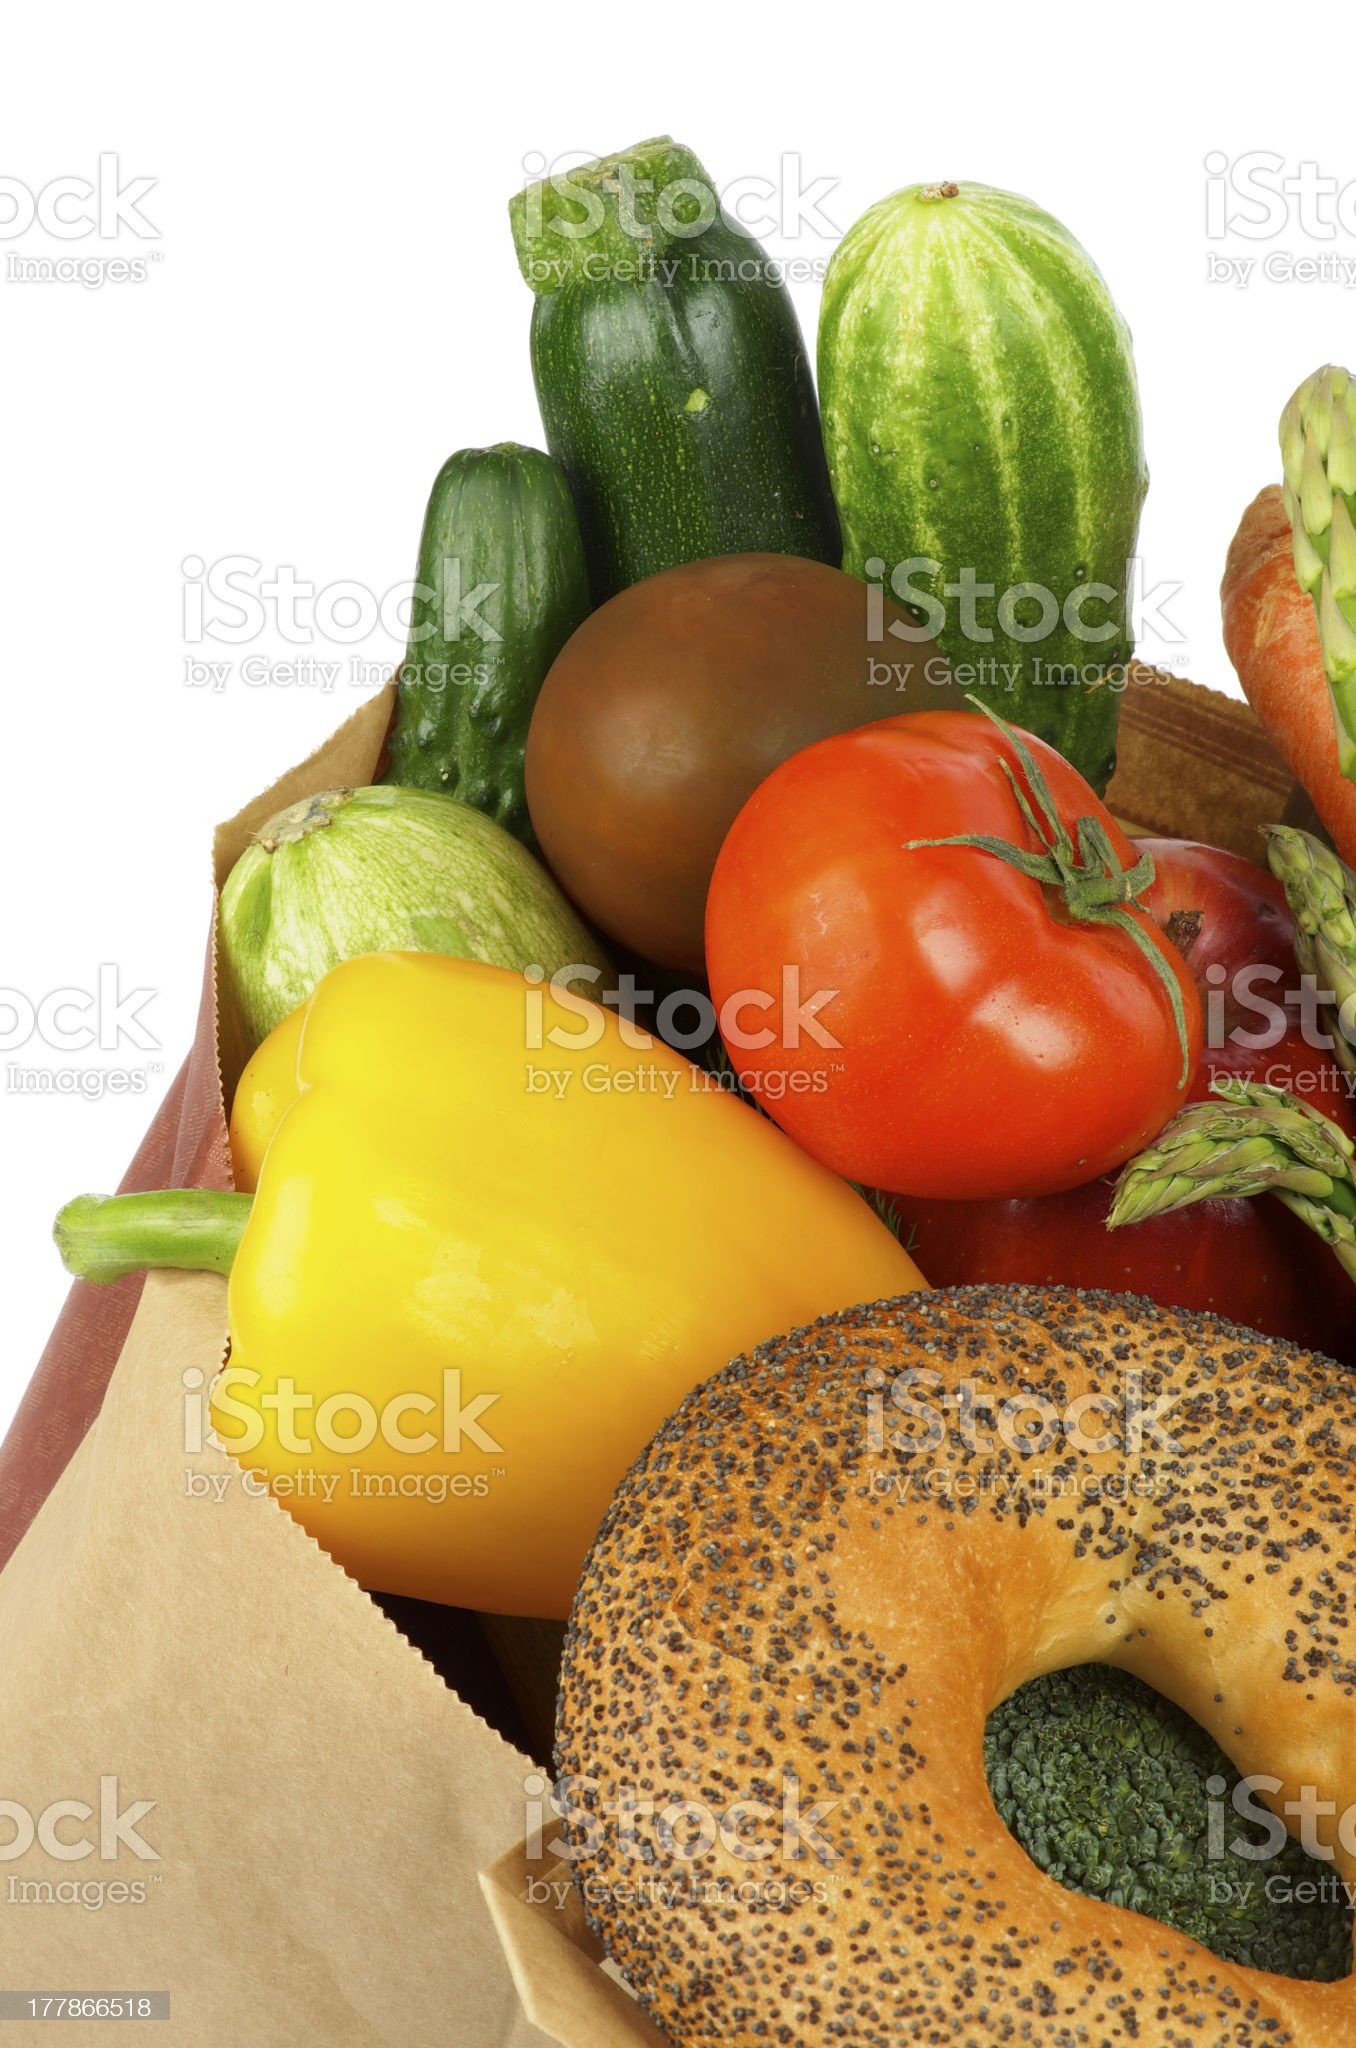 Groceries Bag royalty-free stock photo